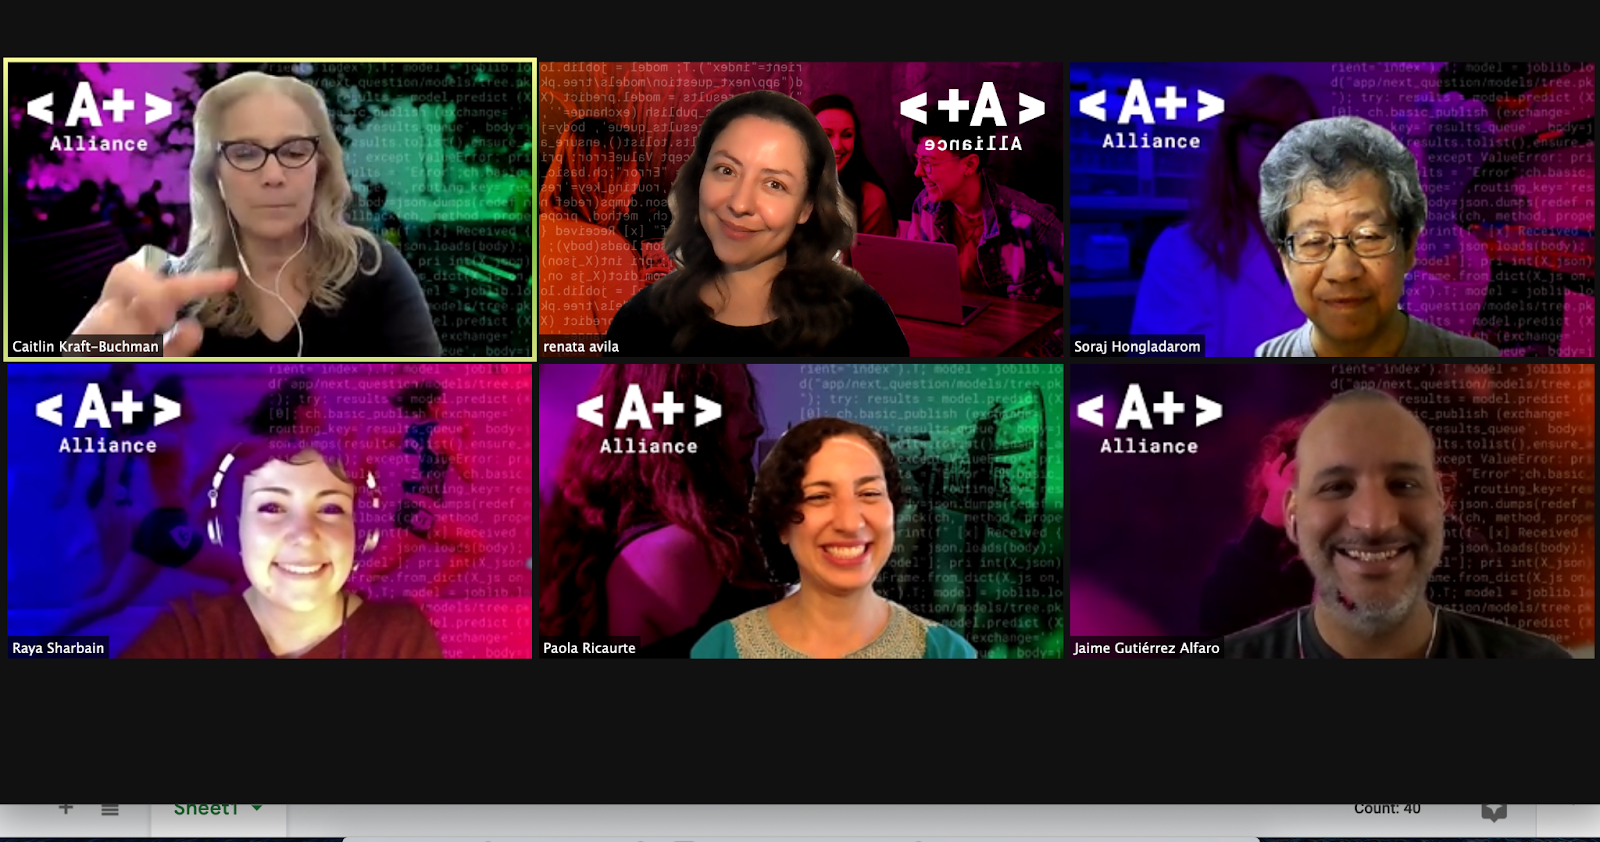 A screenshot of 6 people on zoom (headshots) looking at the camera and smiling. They have colorful backgrounds that all say A+ Alliance.